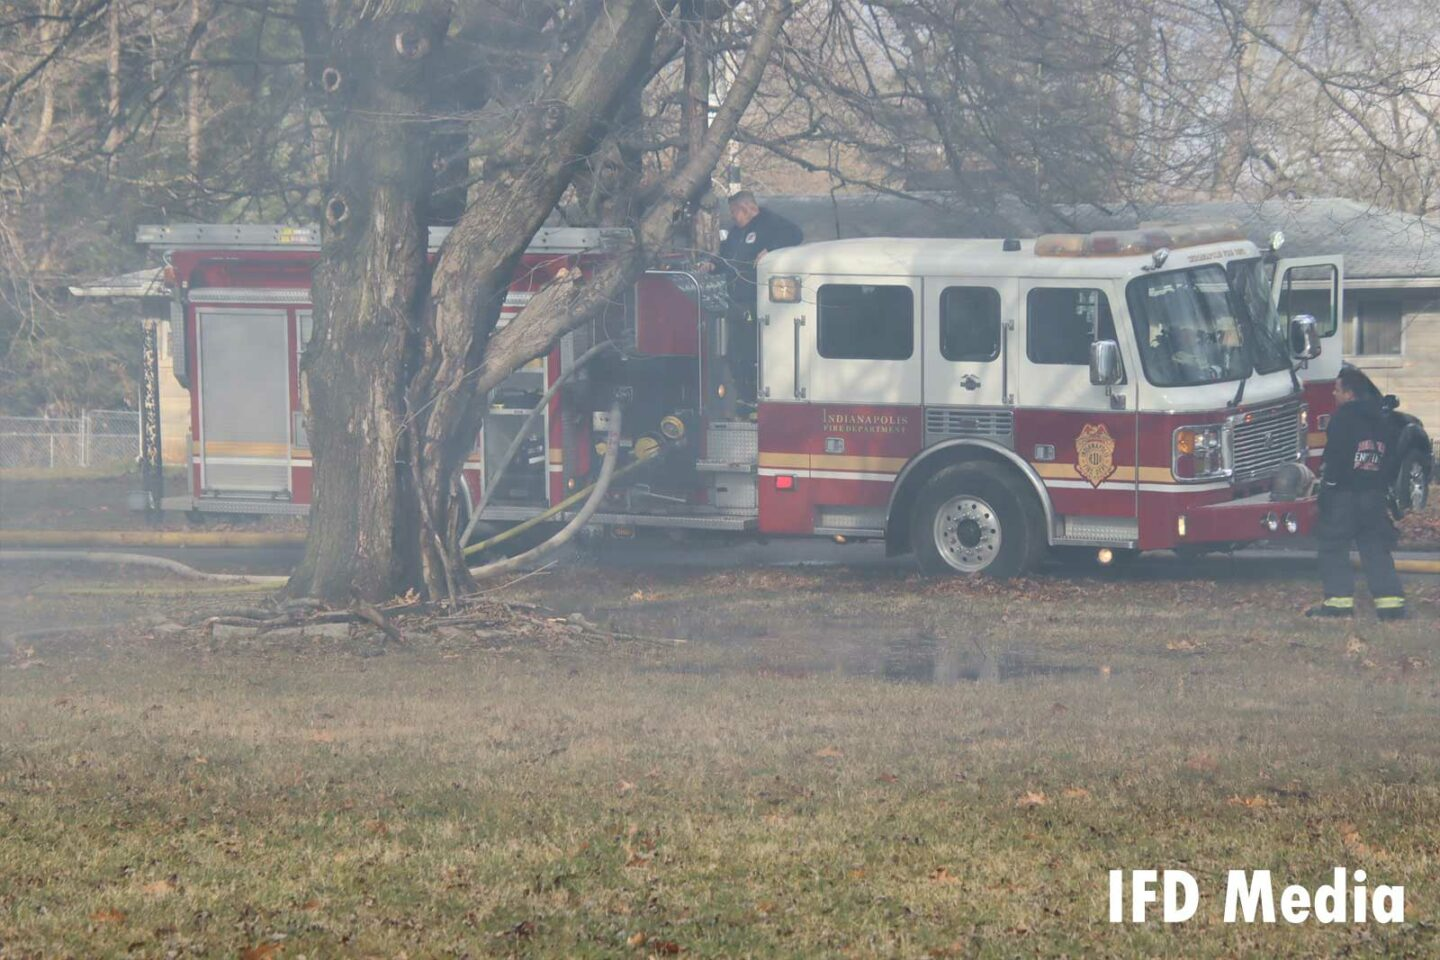 Fire truck at the fire scene